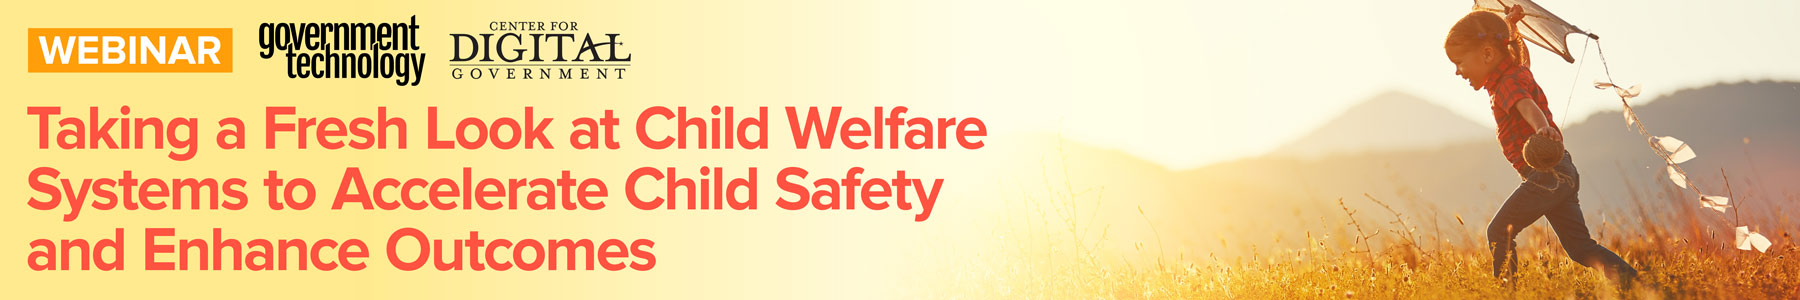 Taking a Fresh Look at Child Welfare Systems to Accelerate Child Safety and Enhance Outcomes